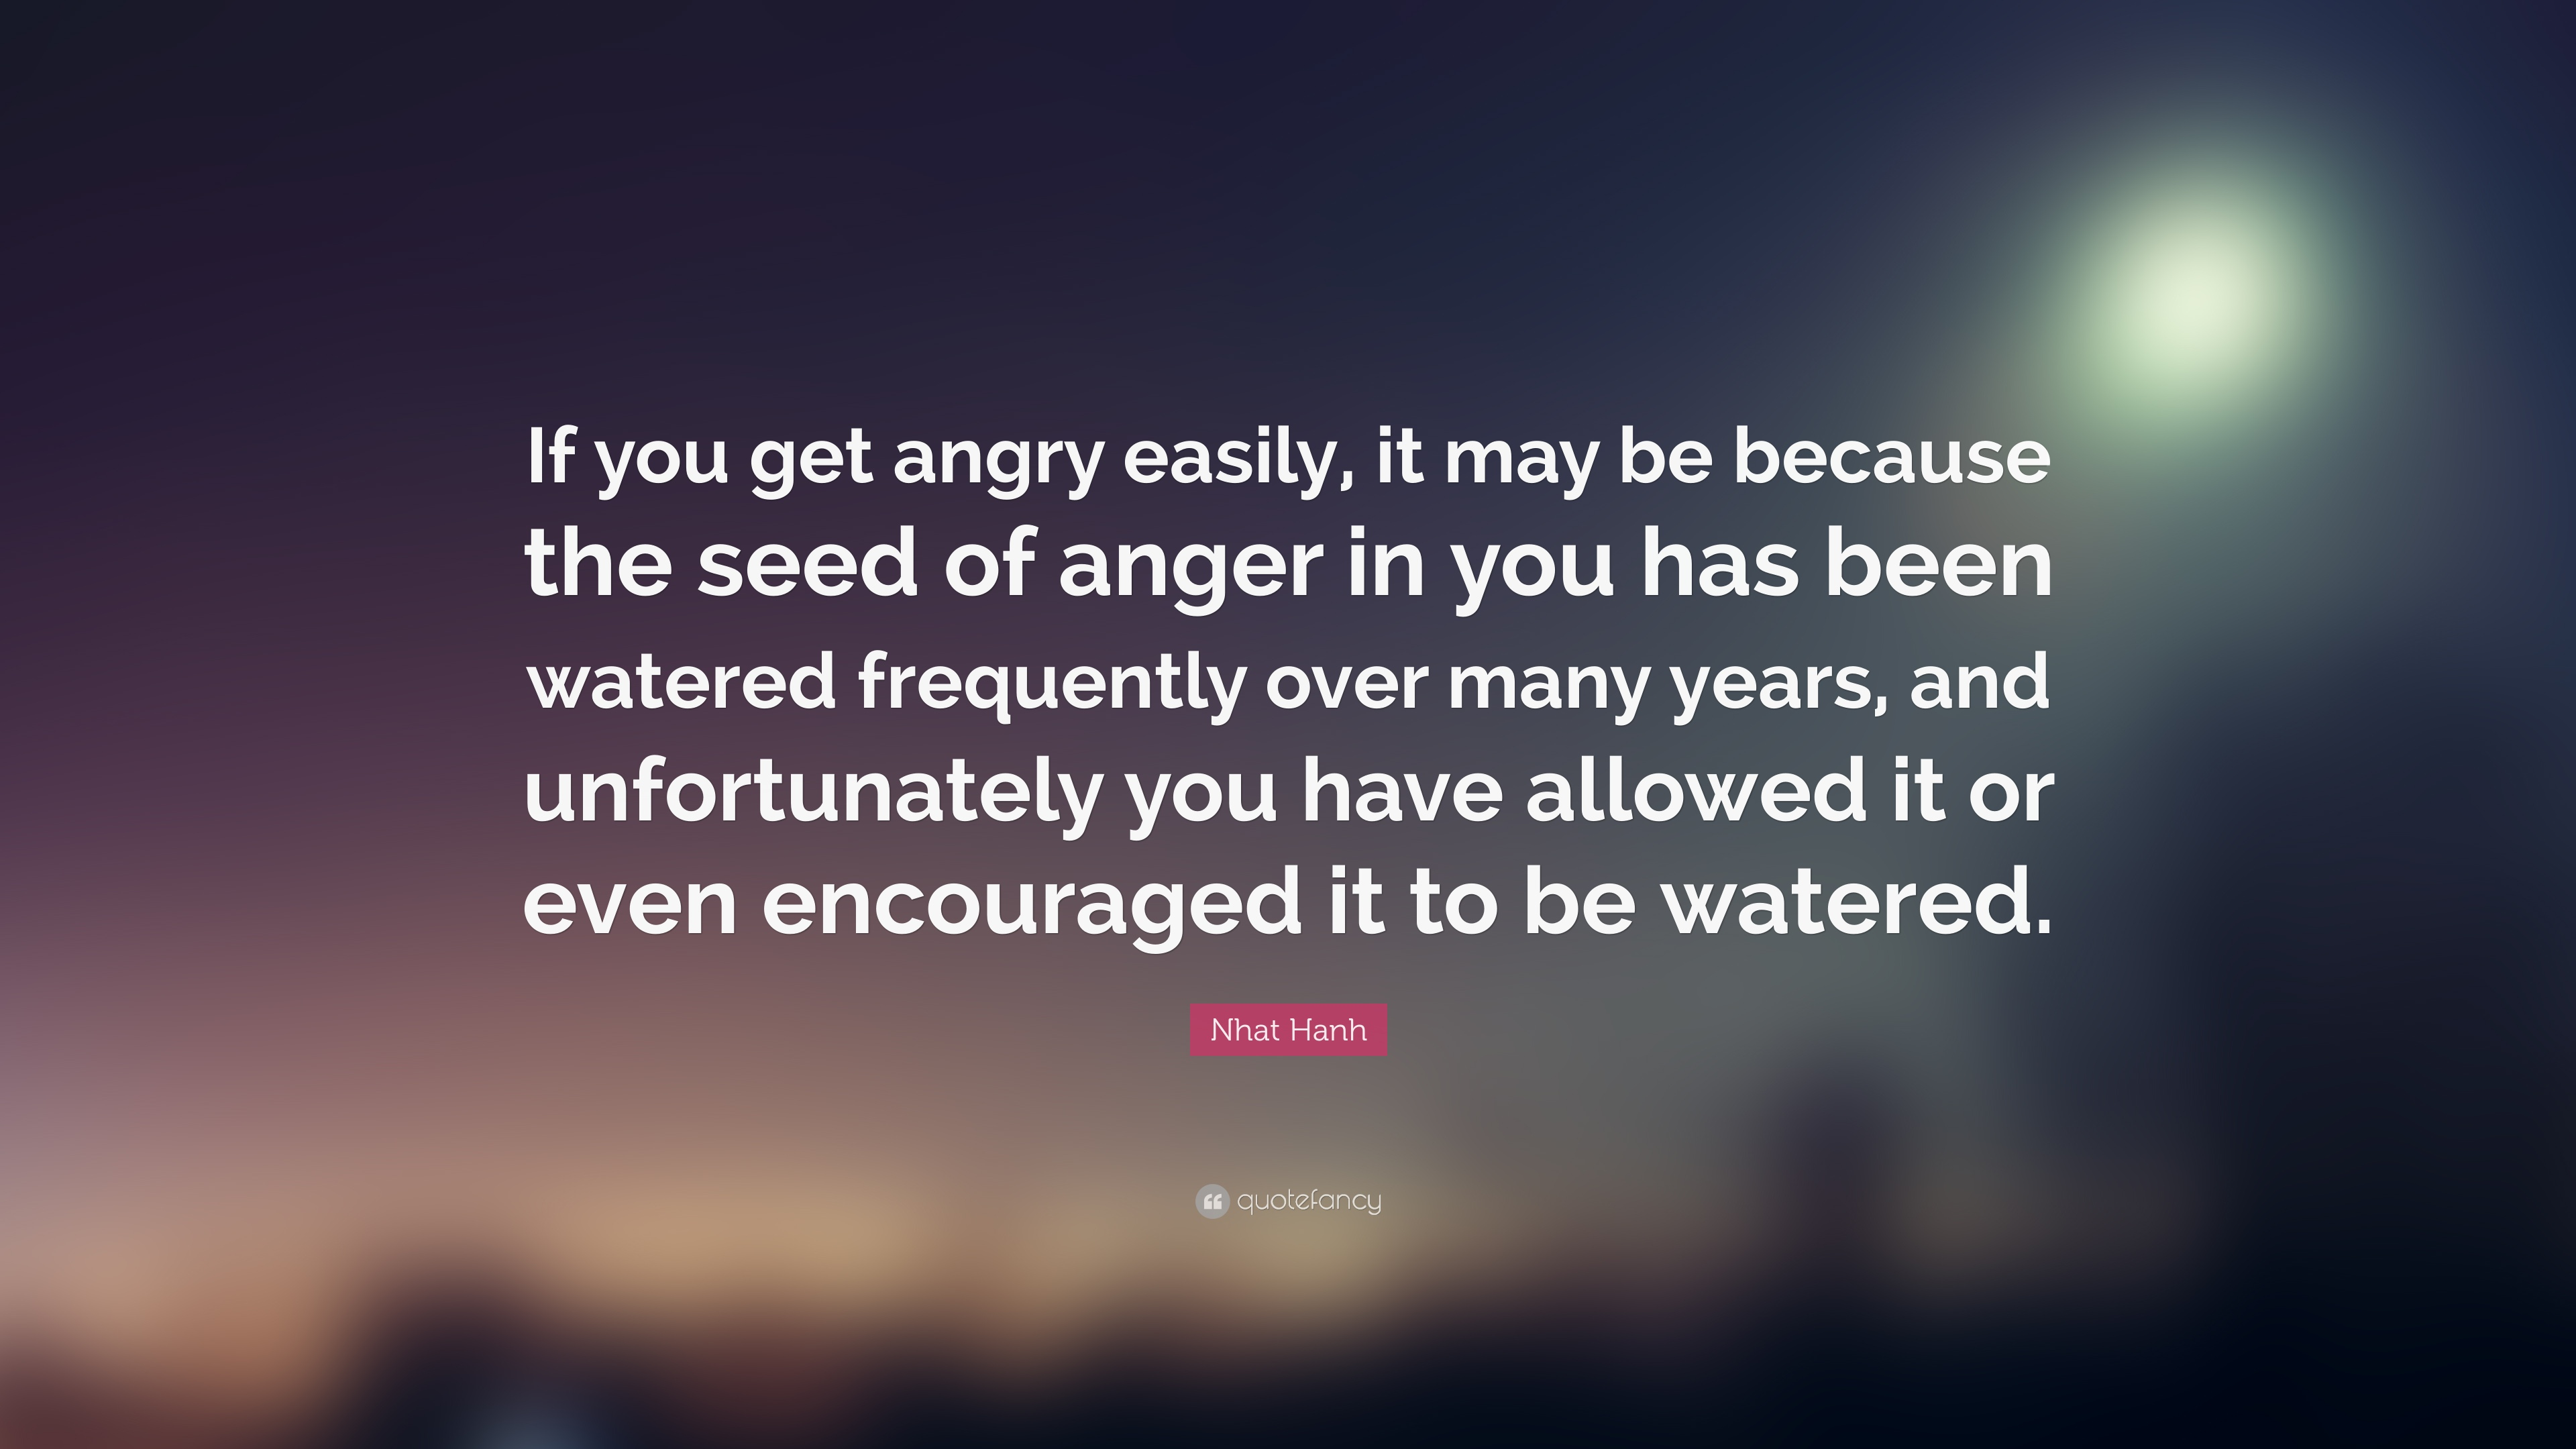 Anger Quotes: U201cIf You Get Angry Easily, It May Be Because The Seed